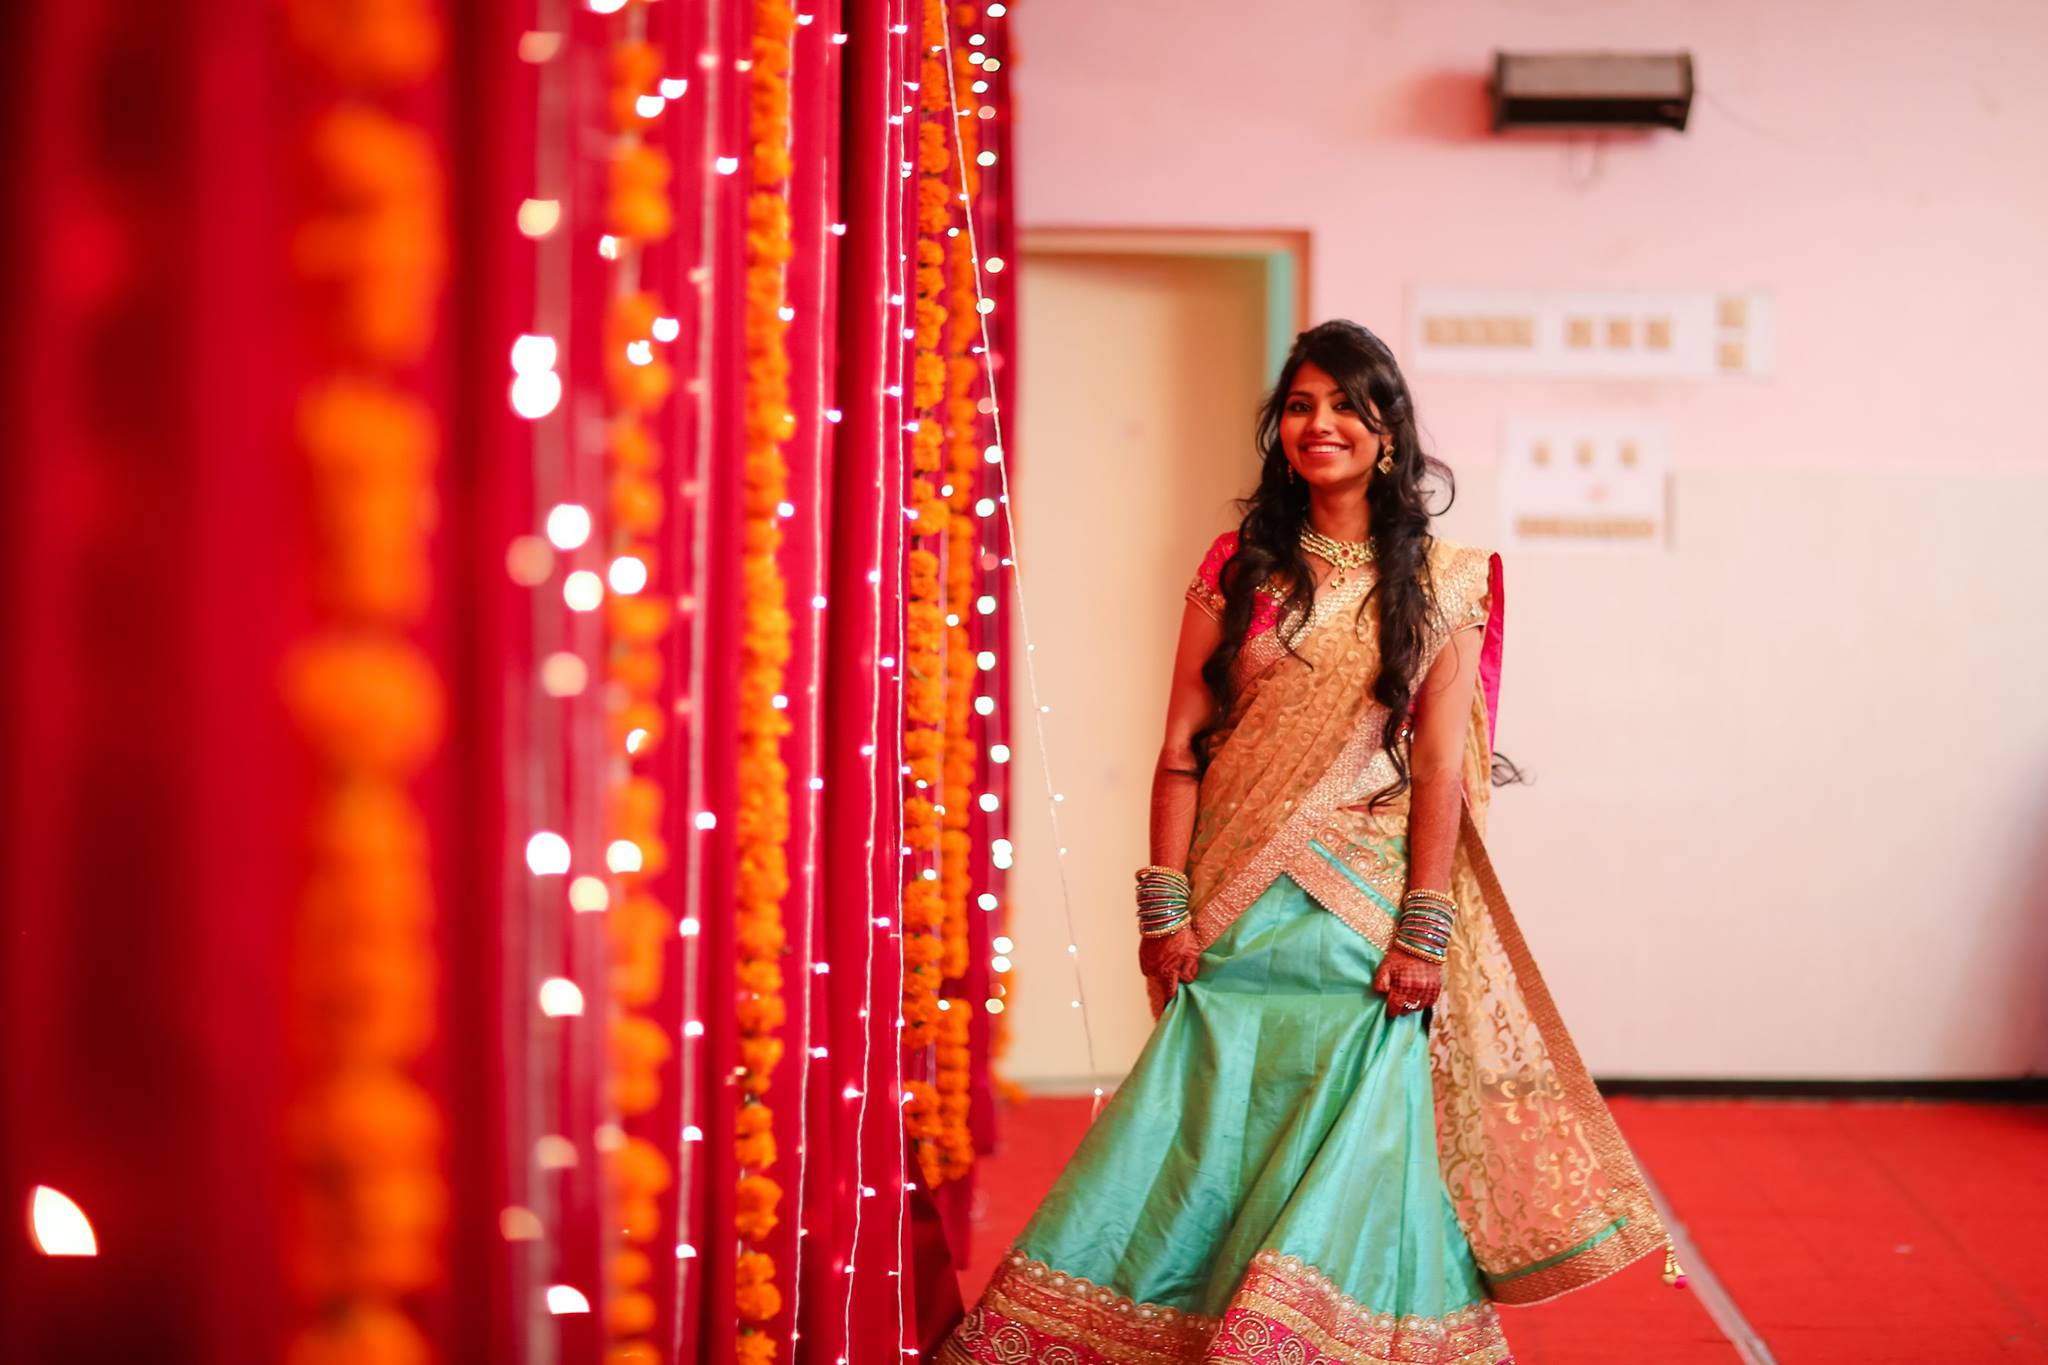 7 best hairstyles for lehenga choli you can try in your wedding